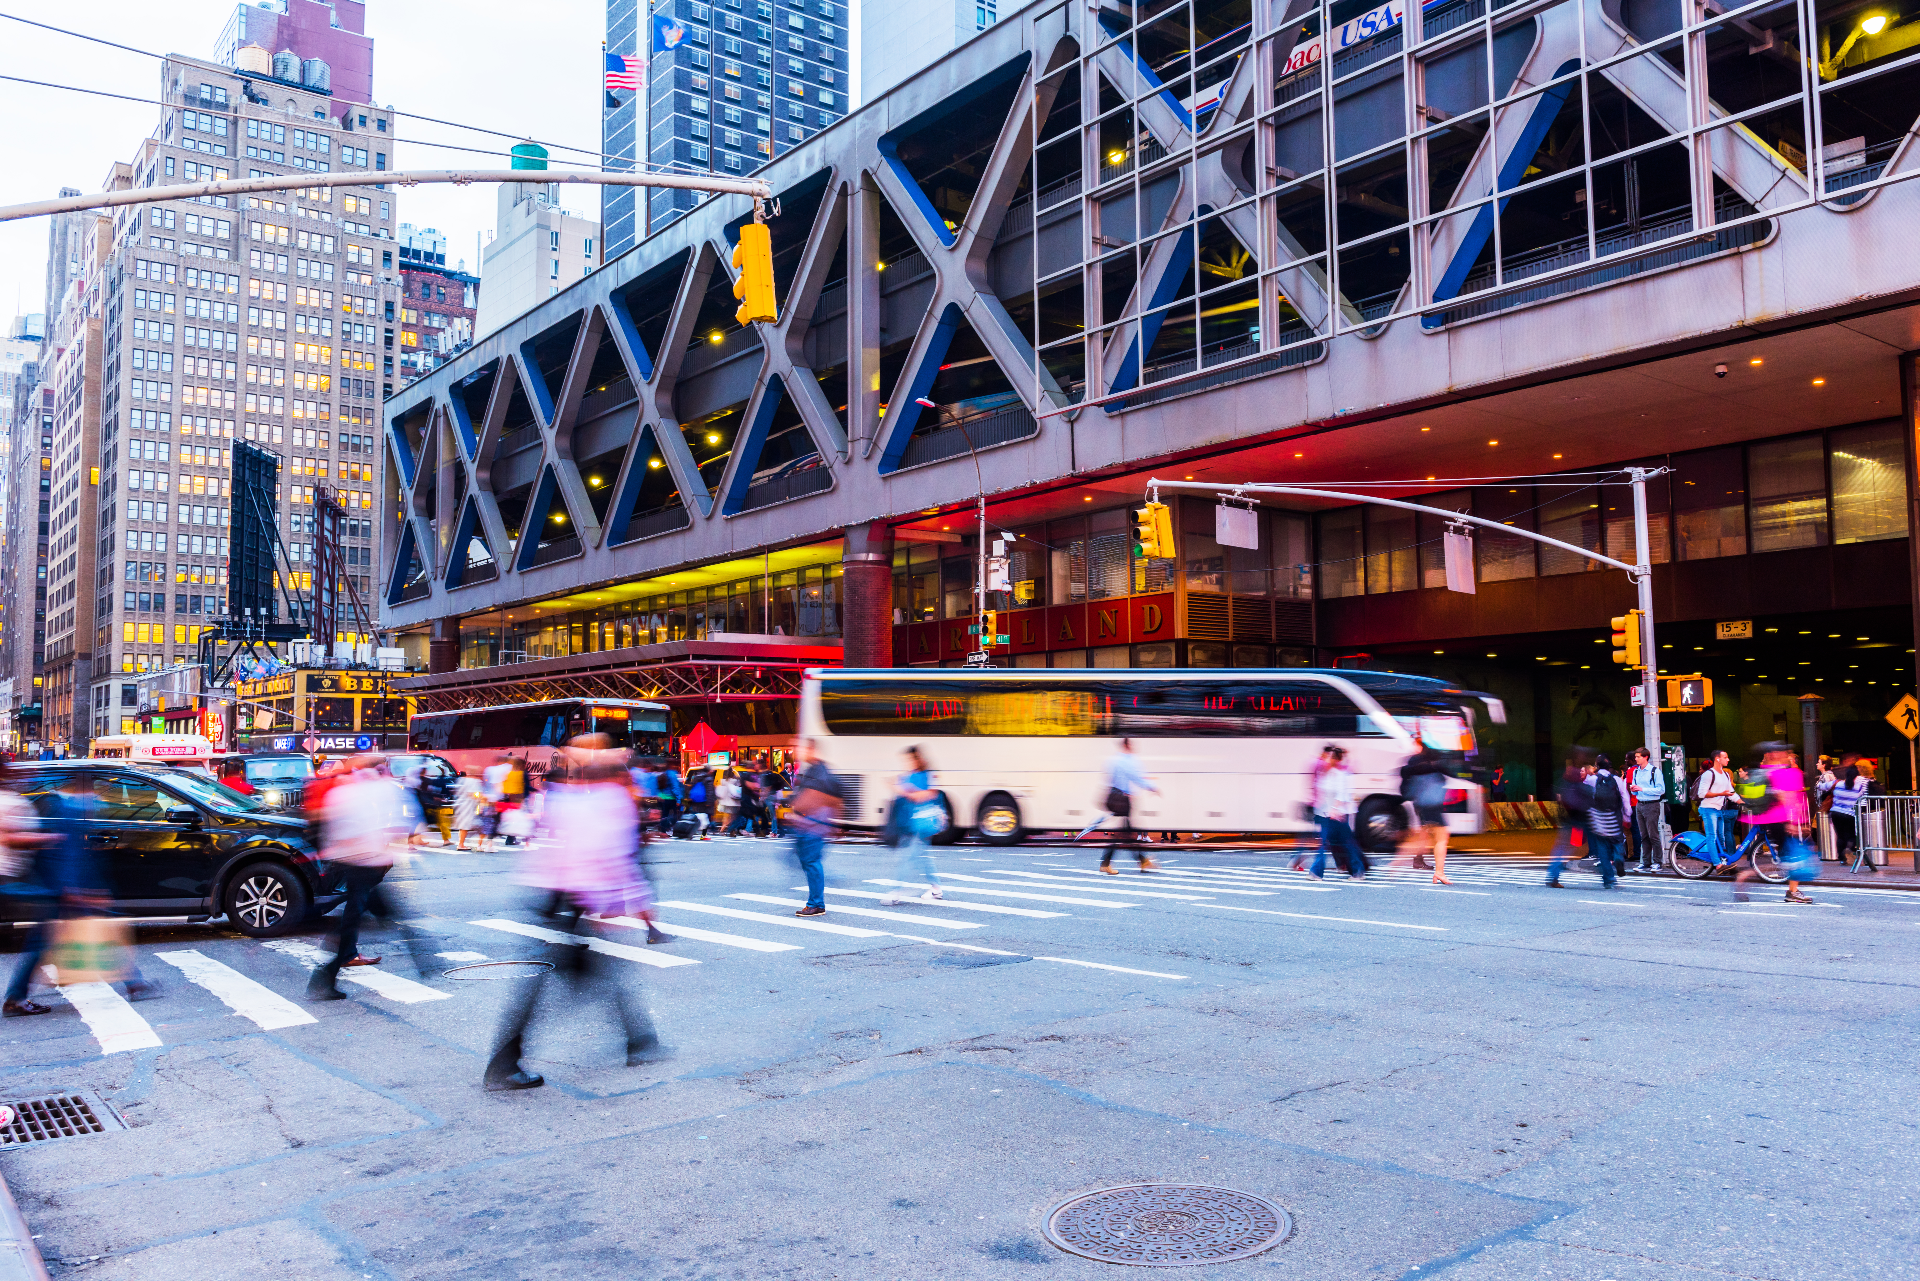 It's finally happening—New York is replacing the Port Authority Bus Terminal